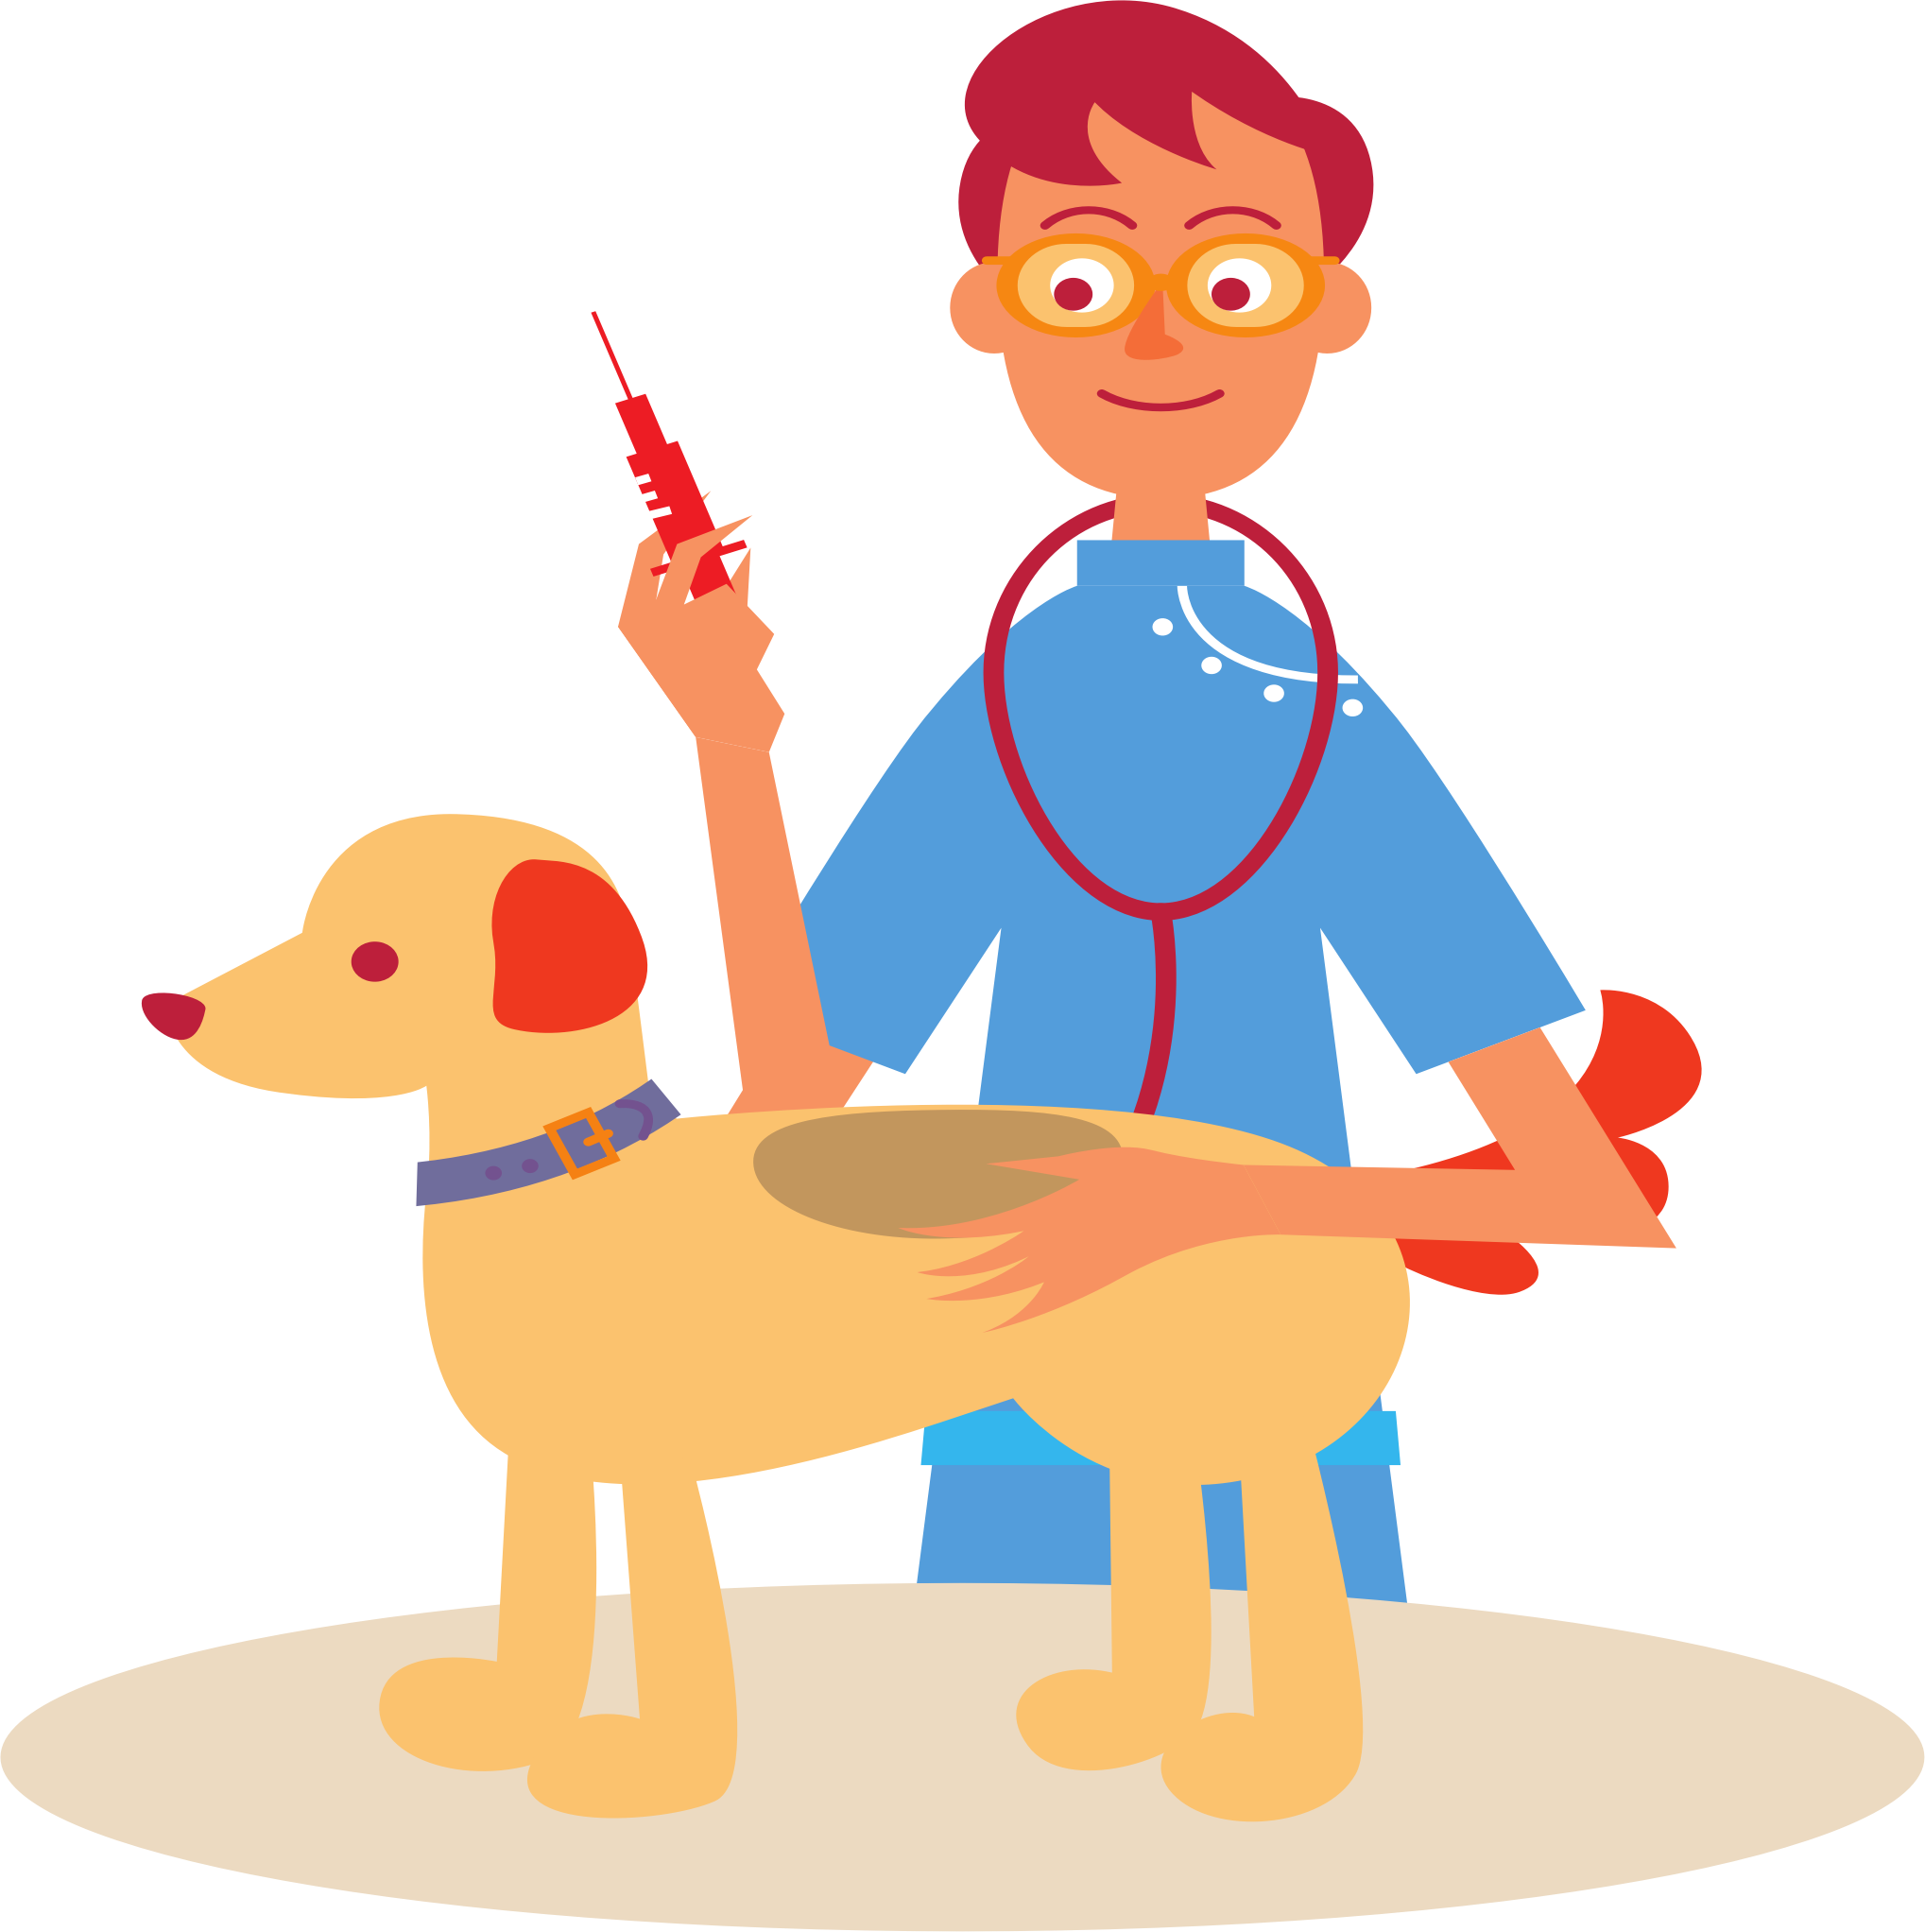 Veterinarian​ and Dog by j4p4n